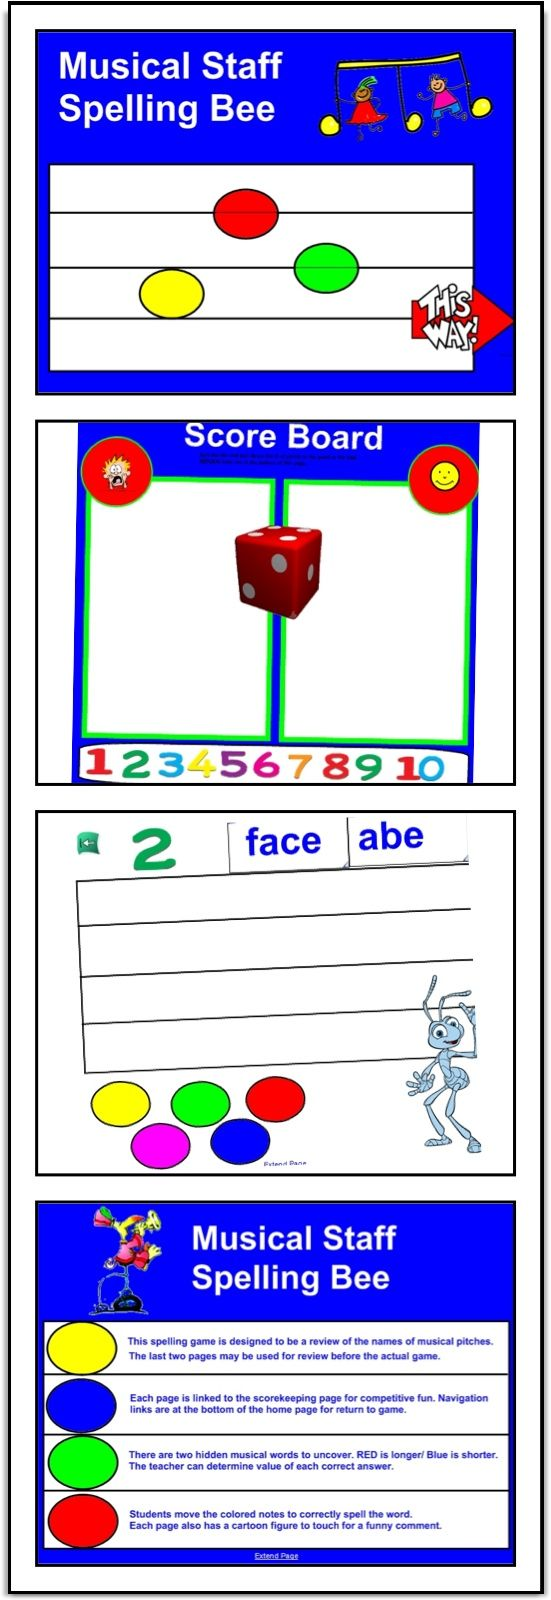 SMARTBoard Musical Spelling Bee Activity / interactive, roll die, spell staff words, earn points, review Treble and Bass staff notation, ideas for 1:1 iPad use. Giggly fun review.